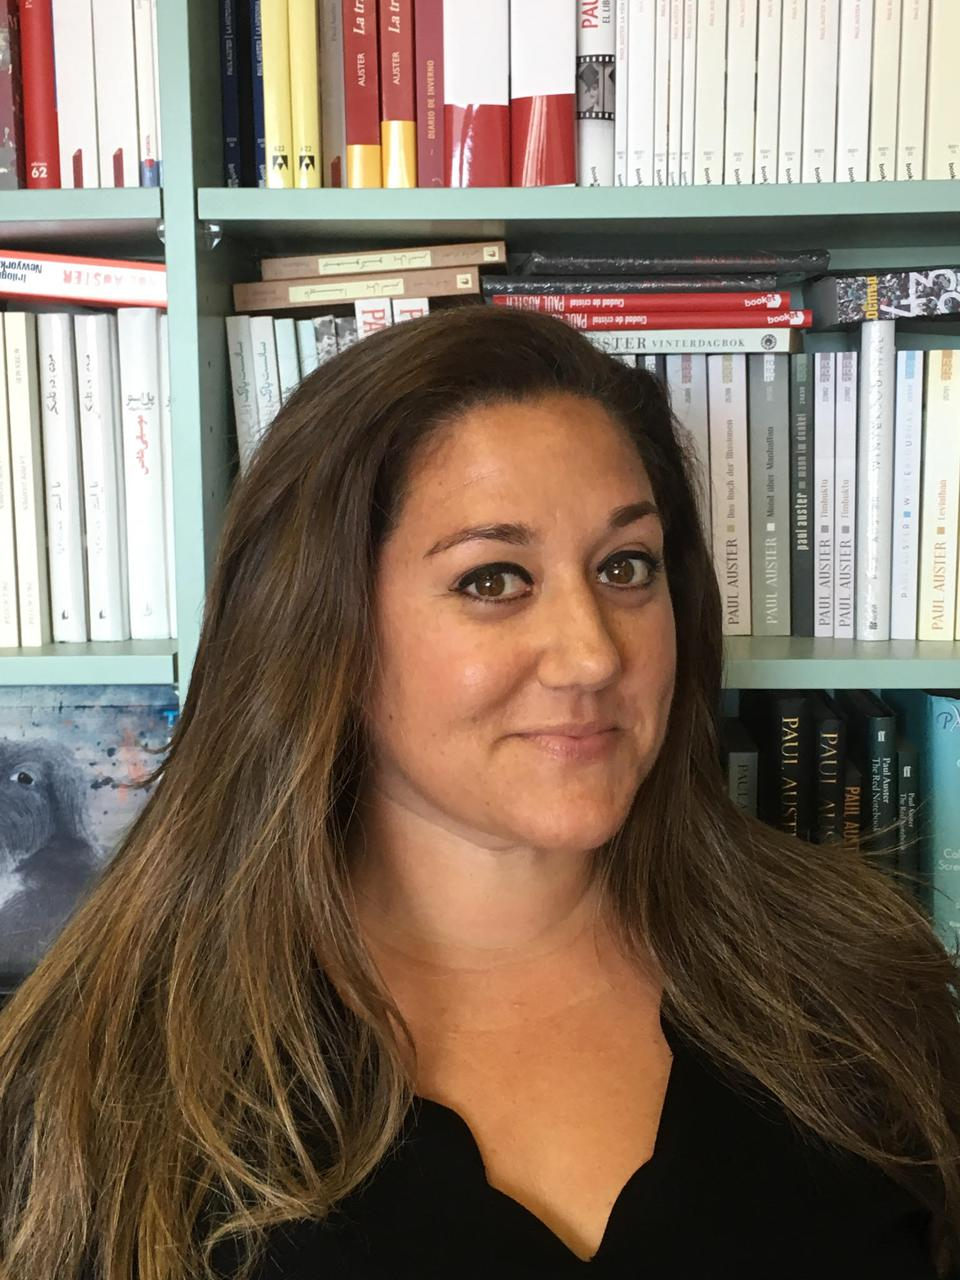 How To Land A Literary Agent, According To Iris Blasi Of Carol Mann Agency (Part 1)